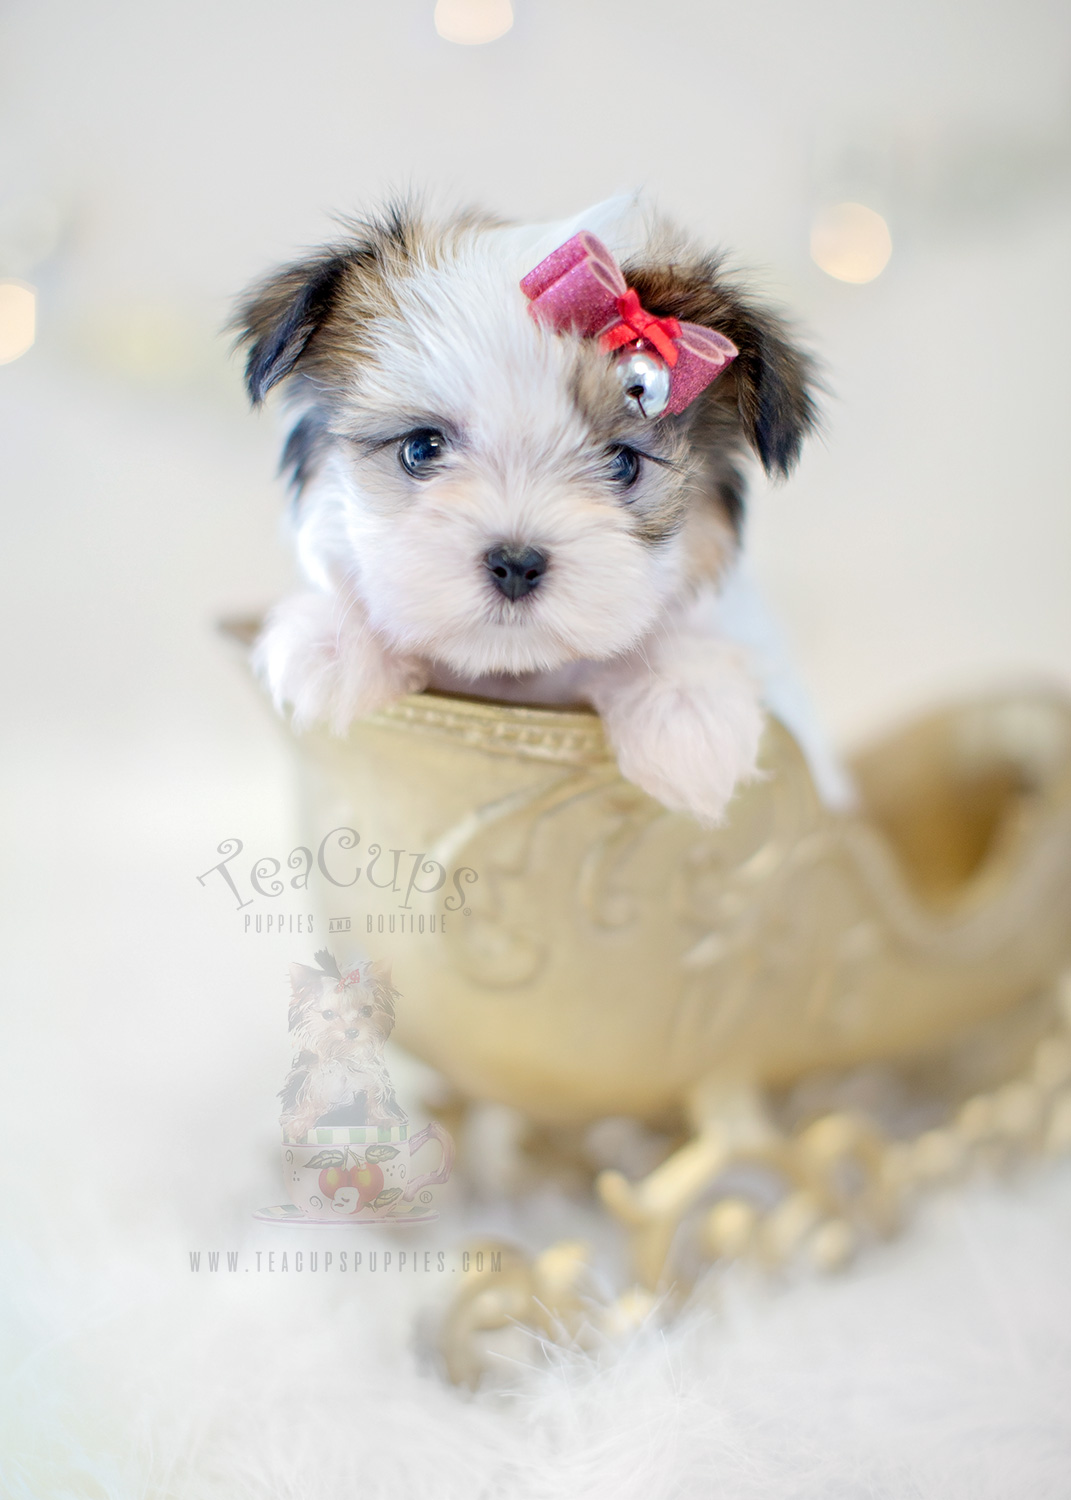 teacup poodles for sale in michigan